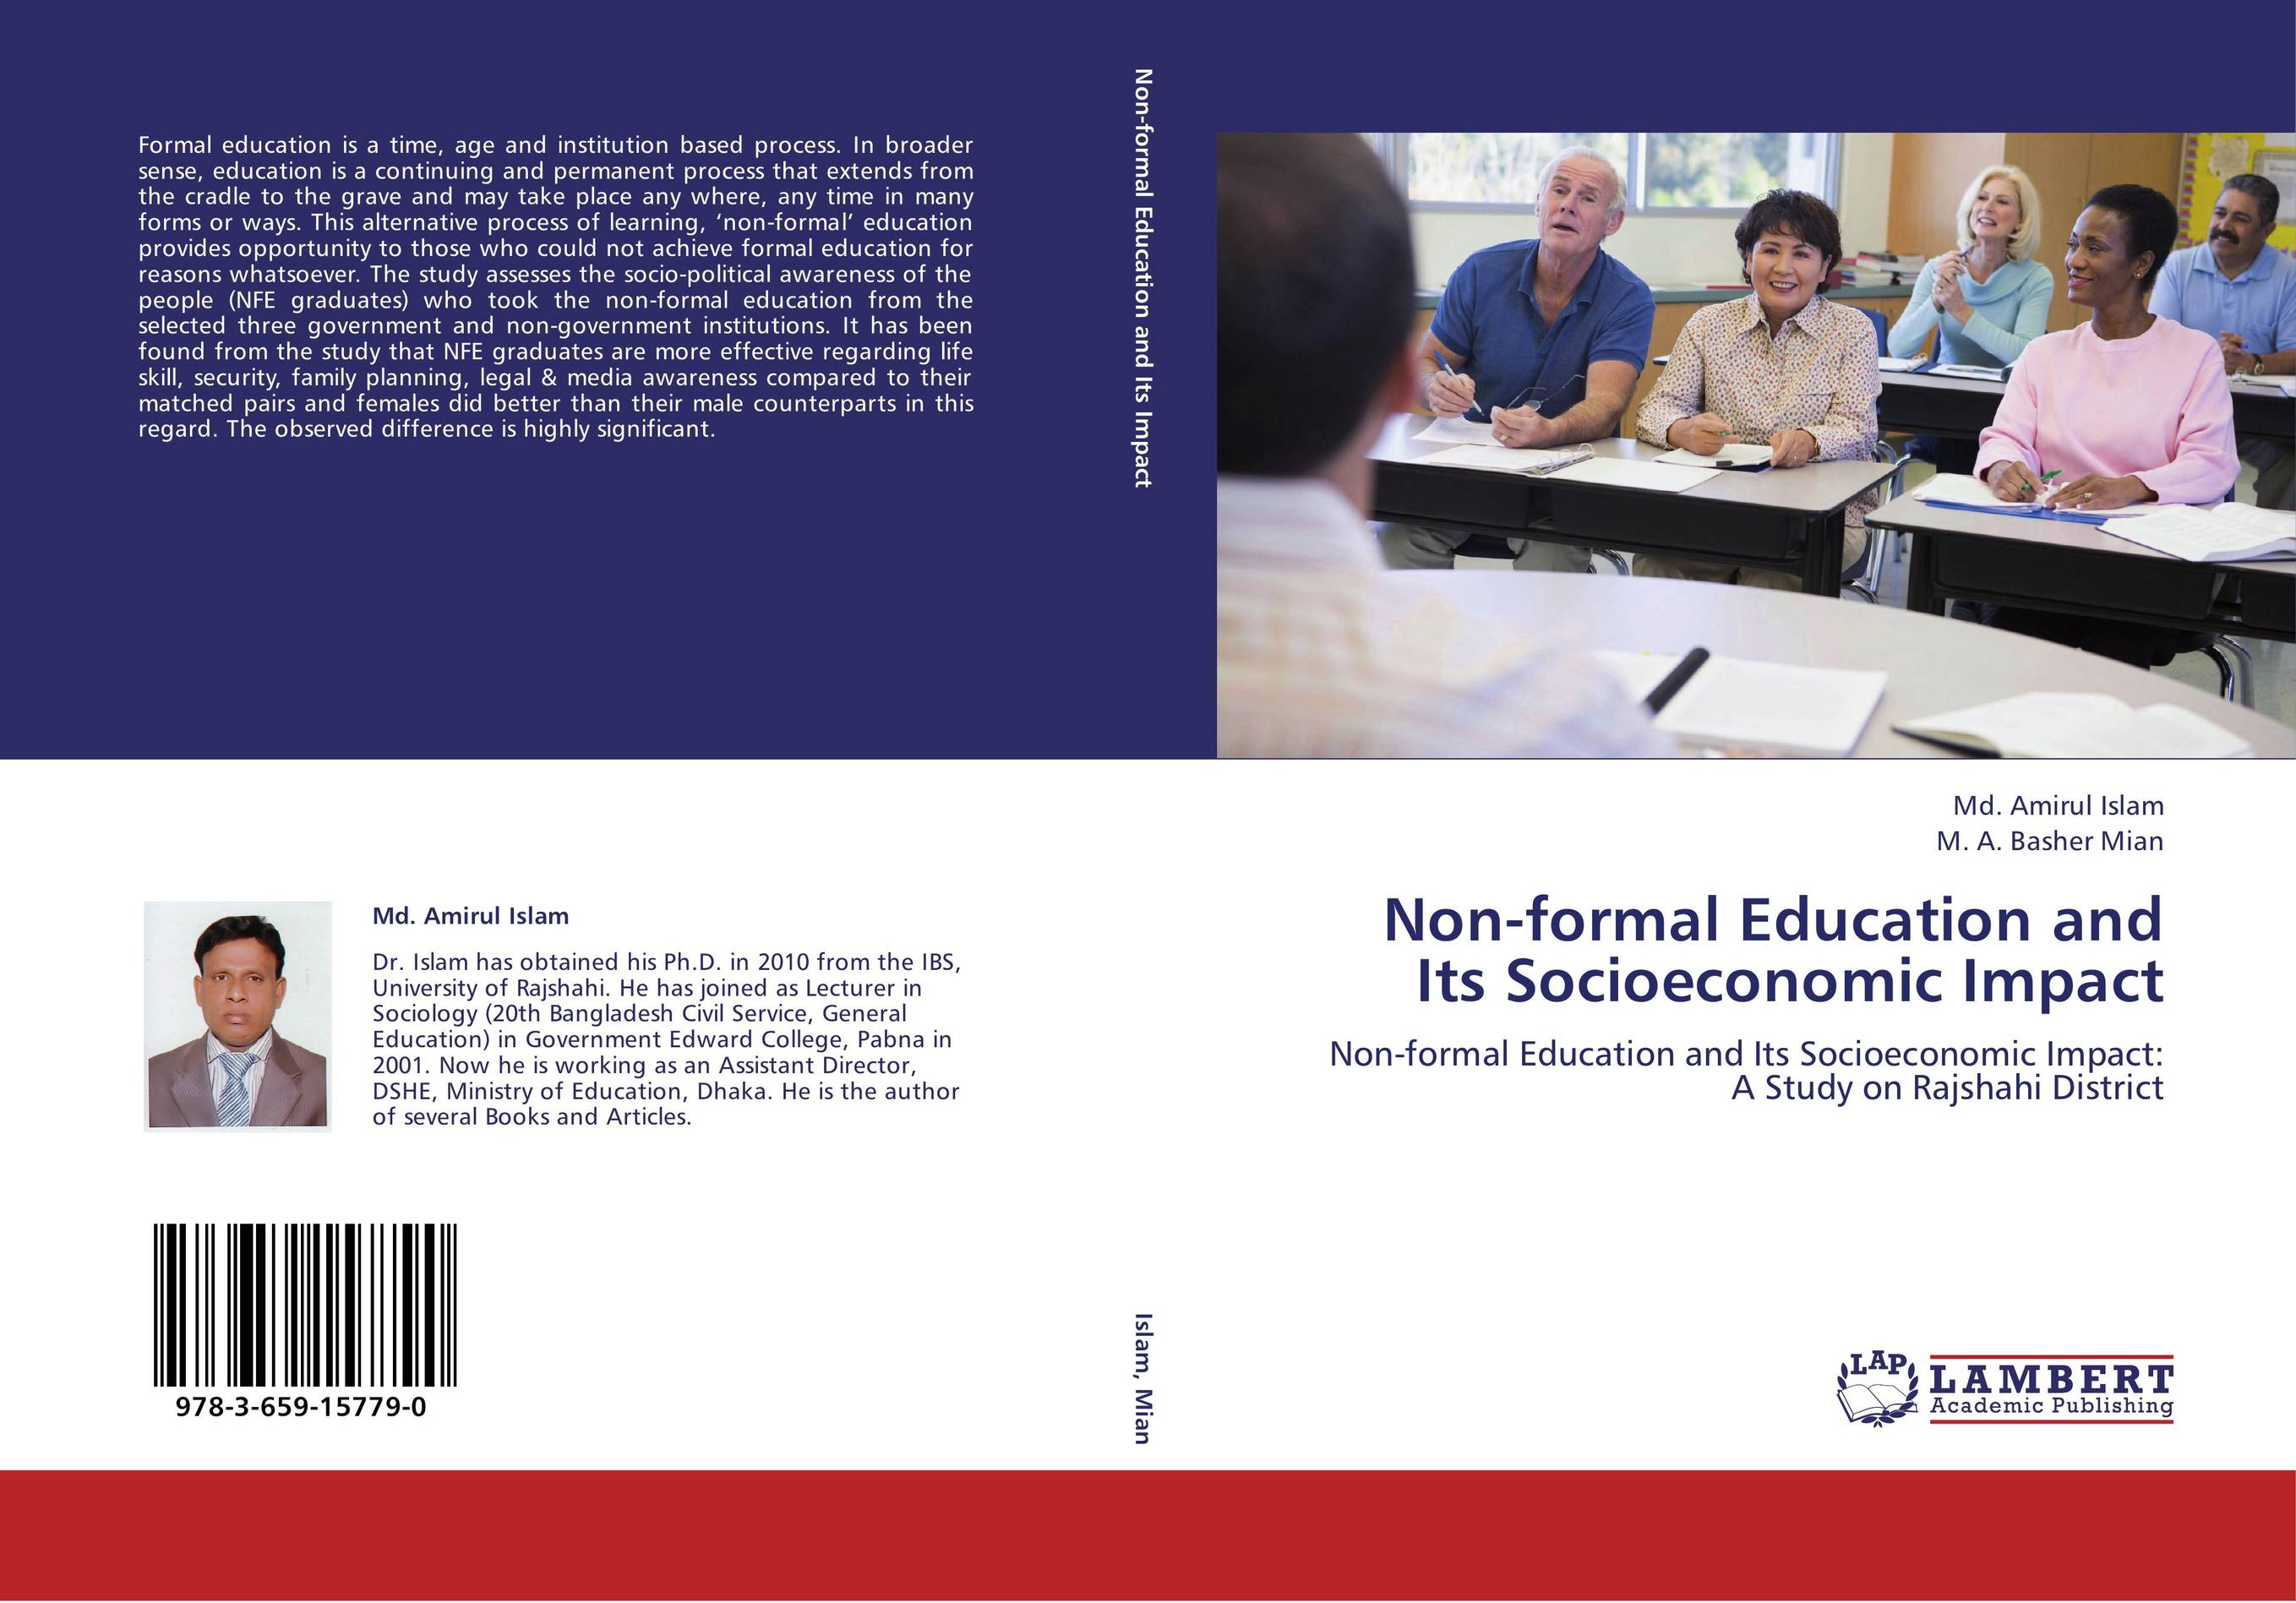 the impact of socioeconomic class on education Amutabi, ma (2003) says that the impact of socioeconomic status on children's readiness for school: while the segregating nature of social class, ethnicity, tradition may well reduce the variety of enriching experience through to be prerequisite for creating readiness to learn among children activates.